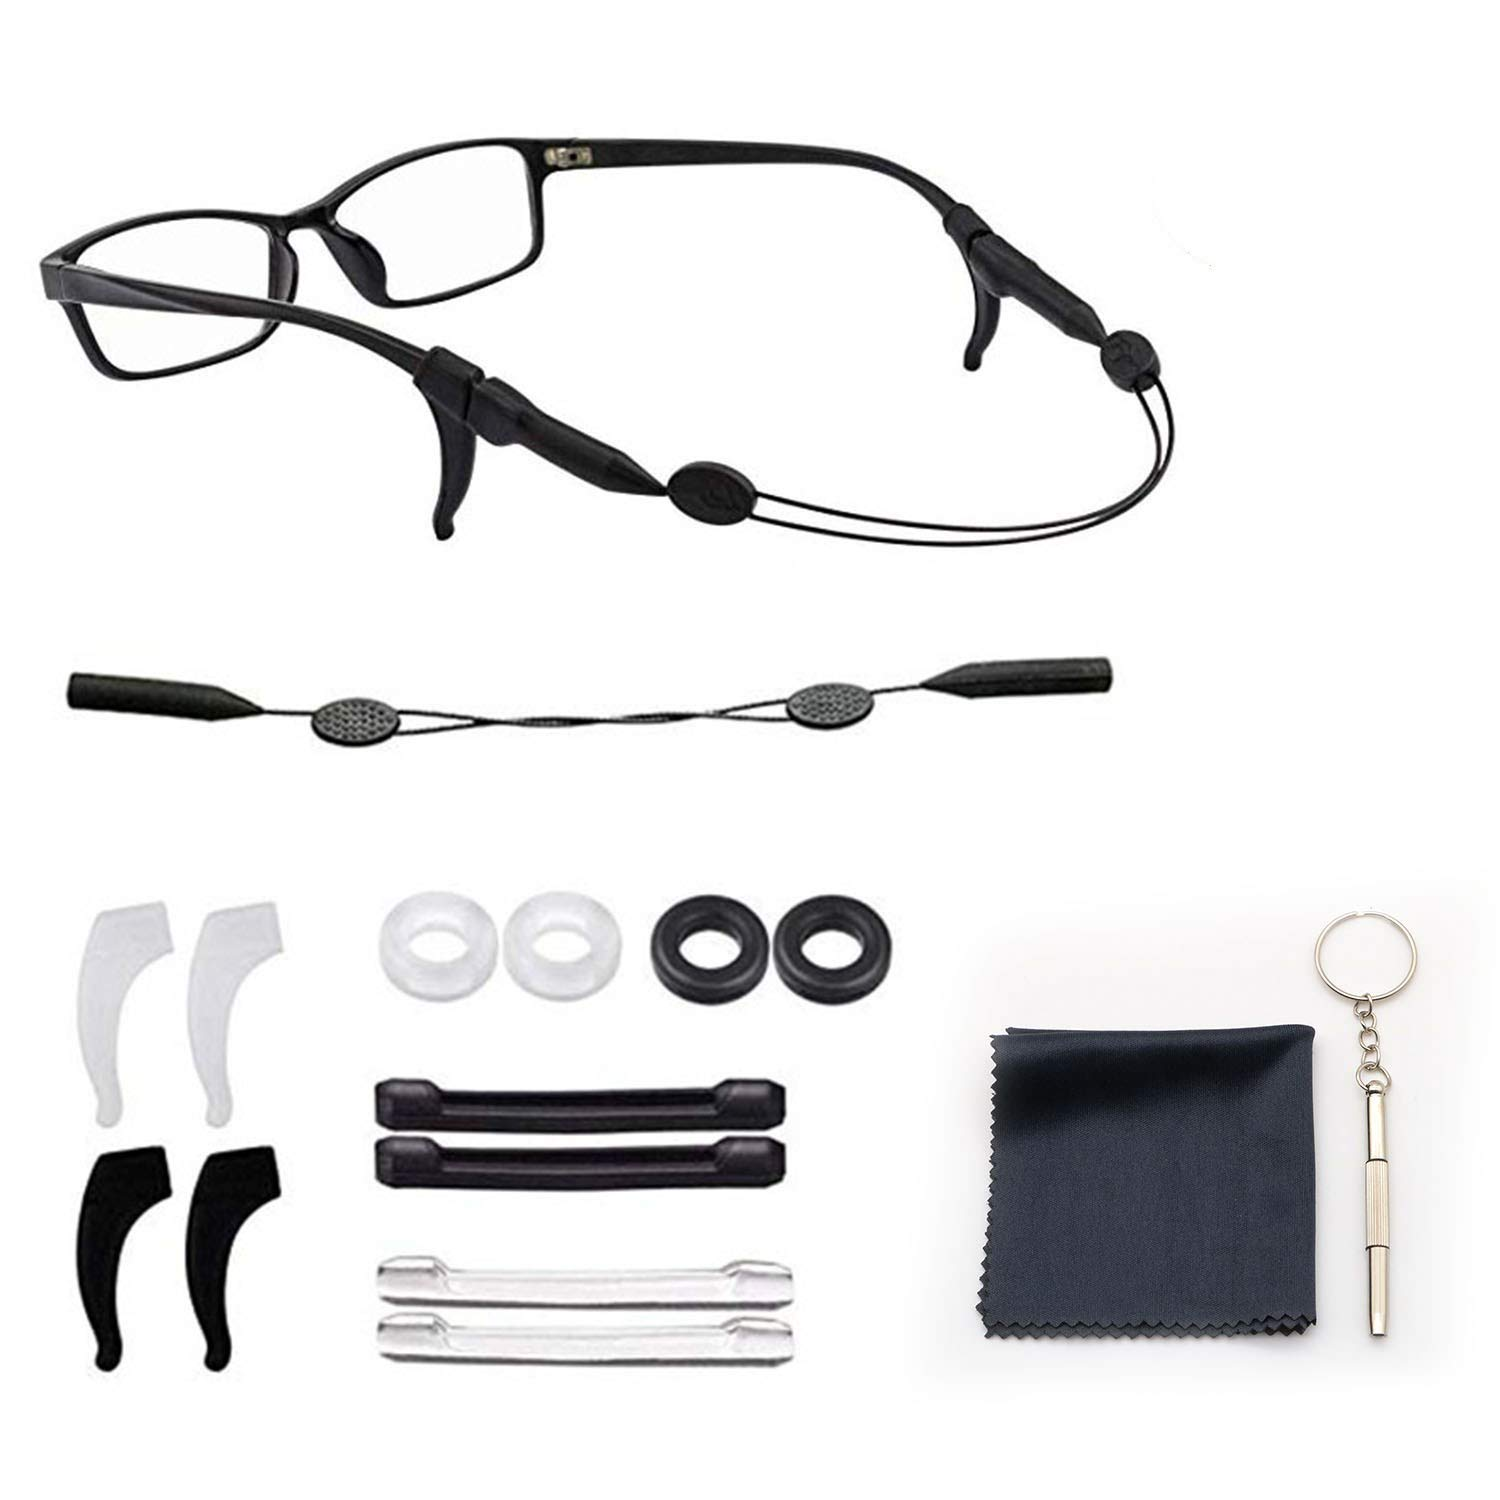 Eyeglasses Retainers Comfort Silicone Anti-Slip Round Glasses Retainers Temple Tips Rings Glasses Ear Hook Grips Holder Eyewear Sleeve Retainer for Sport Spectacle Sunglasses Reading Glasses